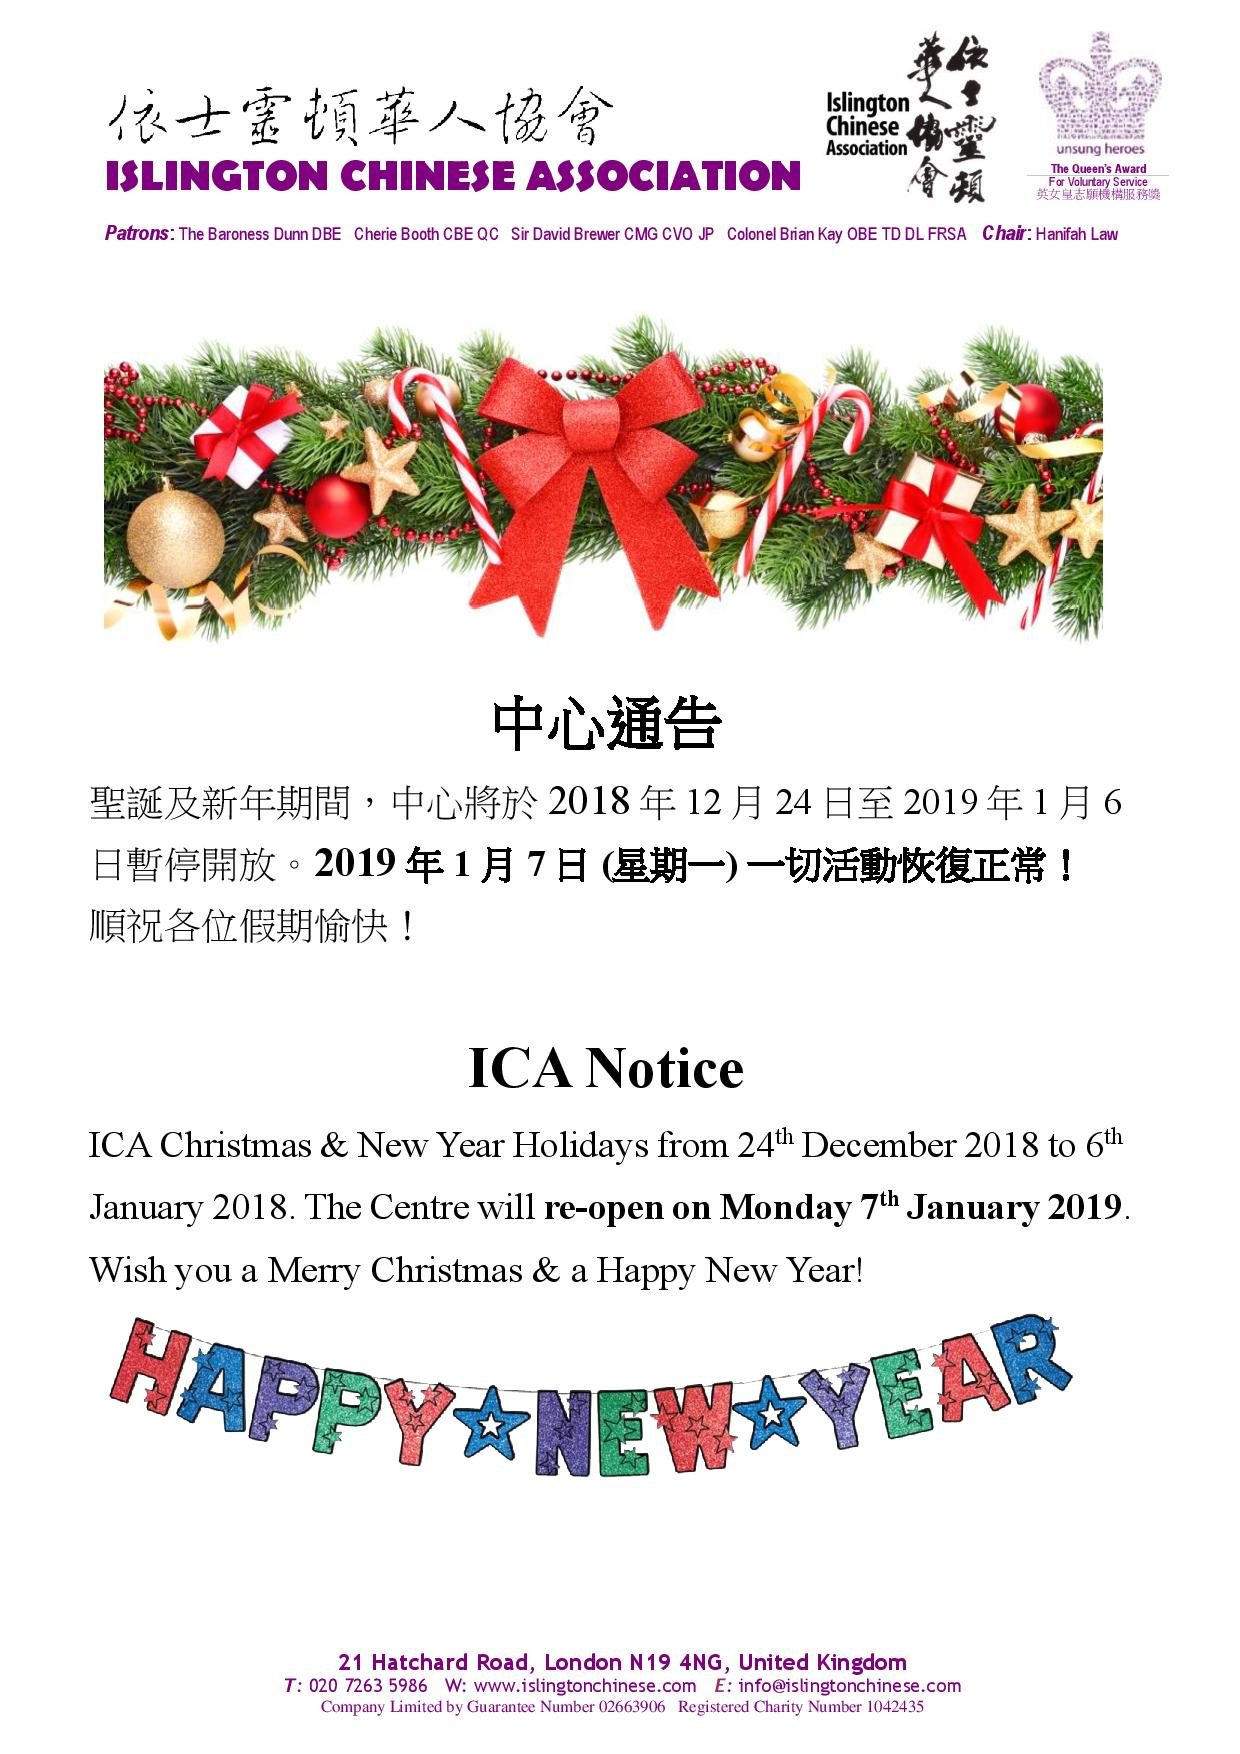 ICA Christmas & New Year Holiday Notice 2018-19